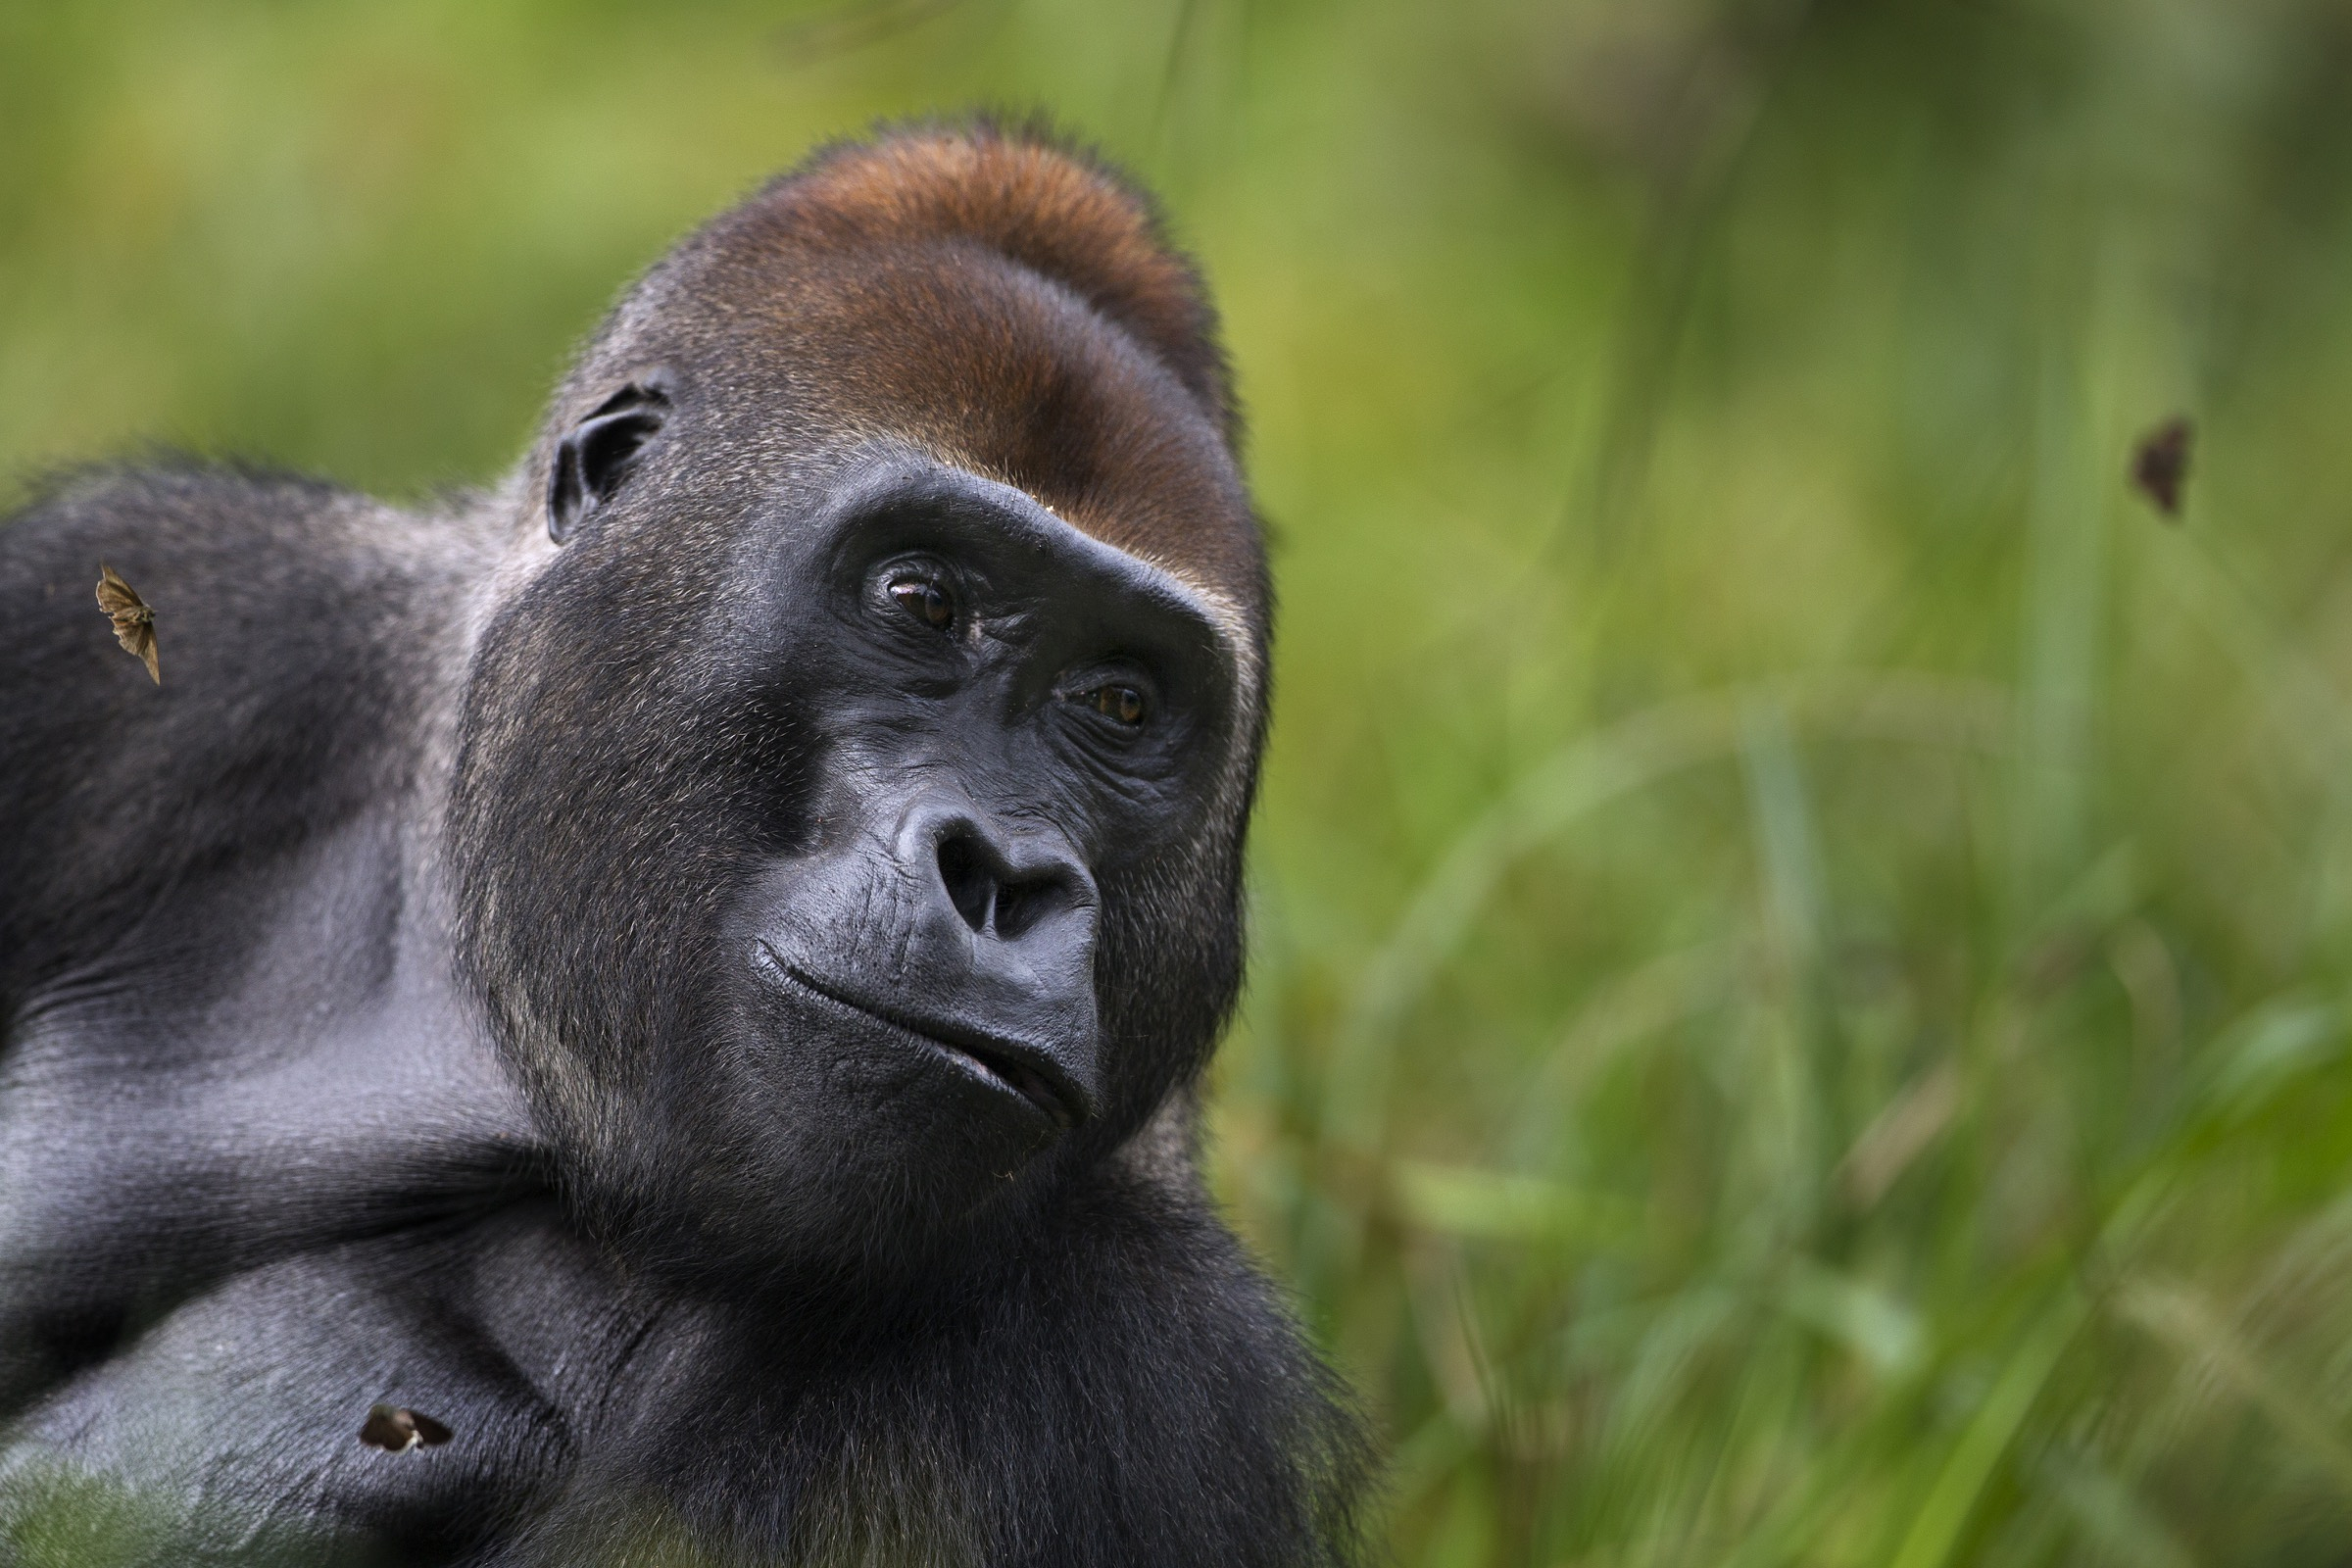 As the dominant male silverback, Makumba called the shots for the other 8 gorillas in his family group.